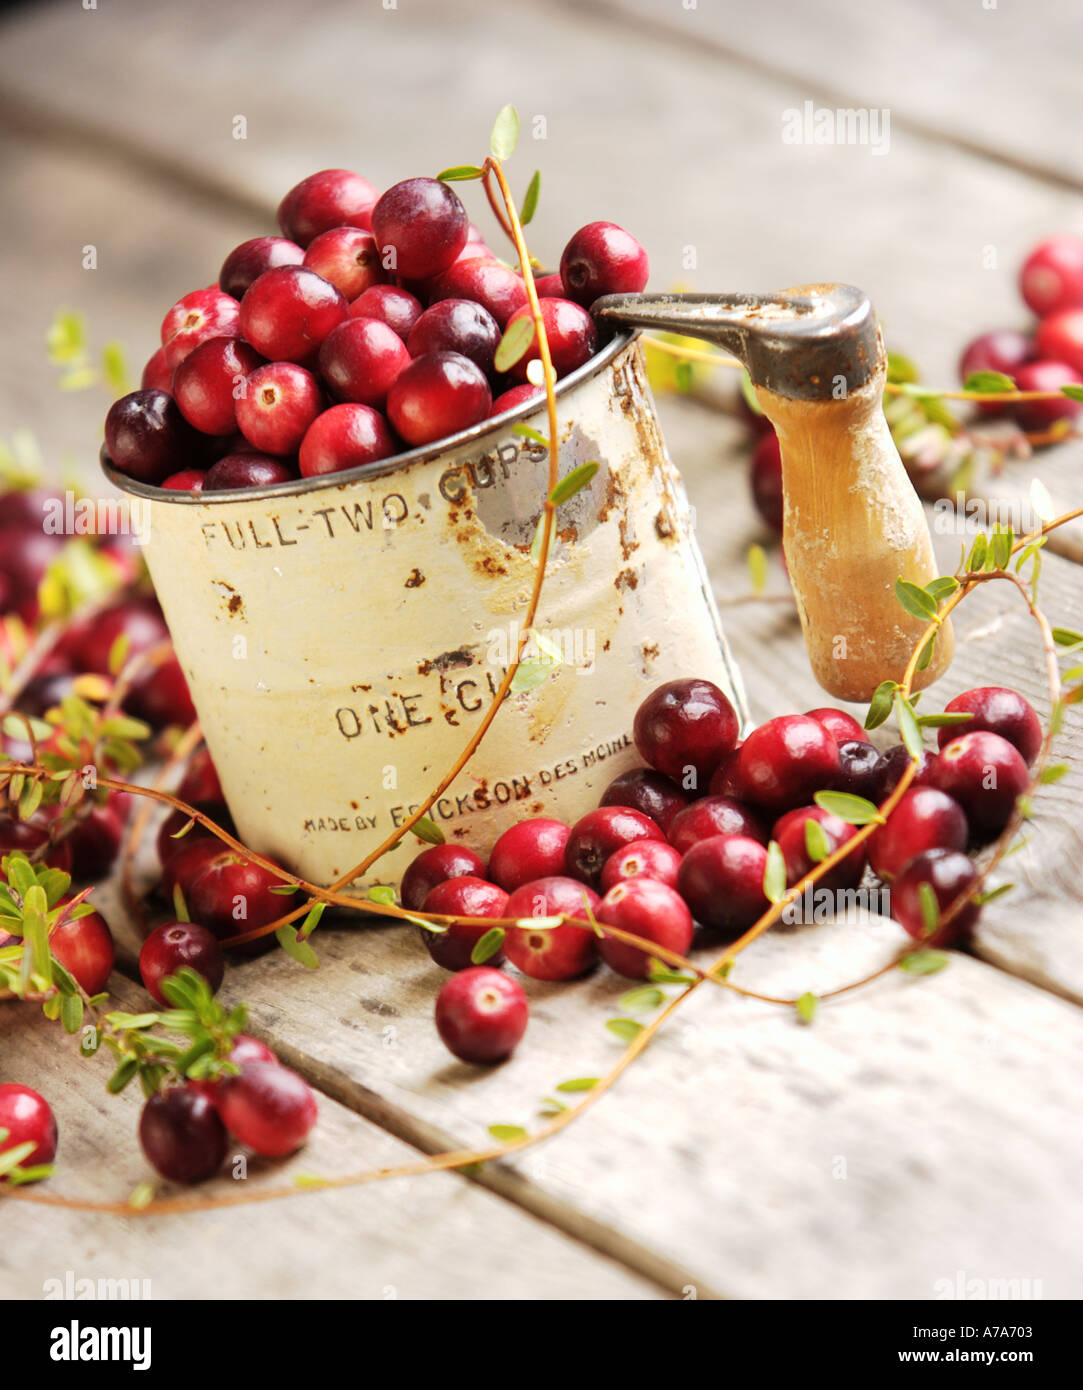 antique flour sifter full of fresh cranberries - Stock Image